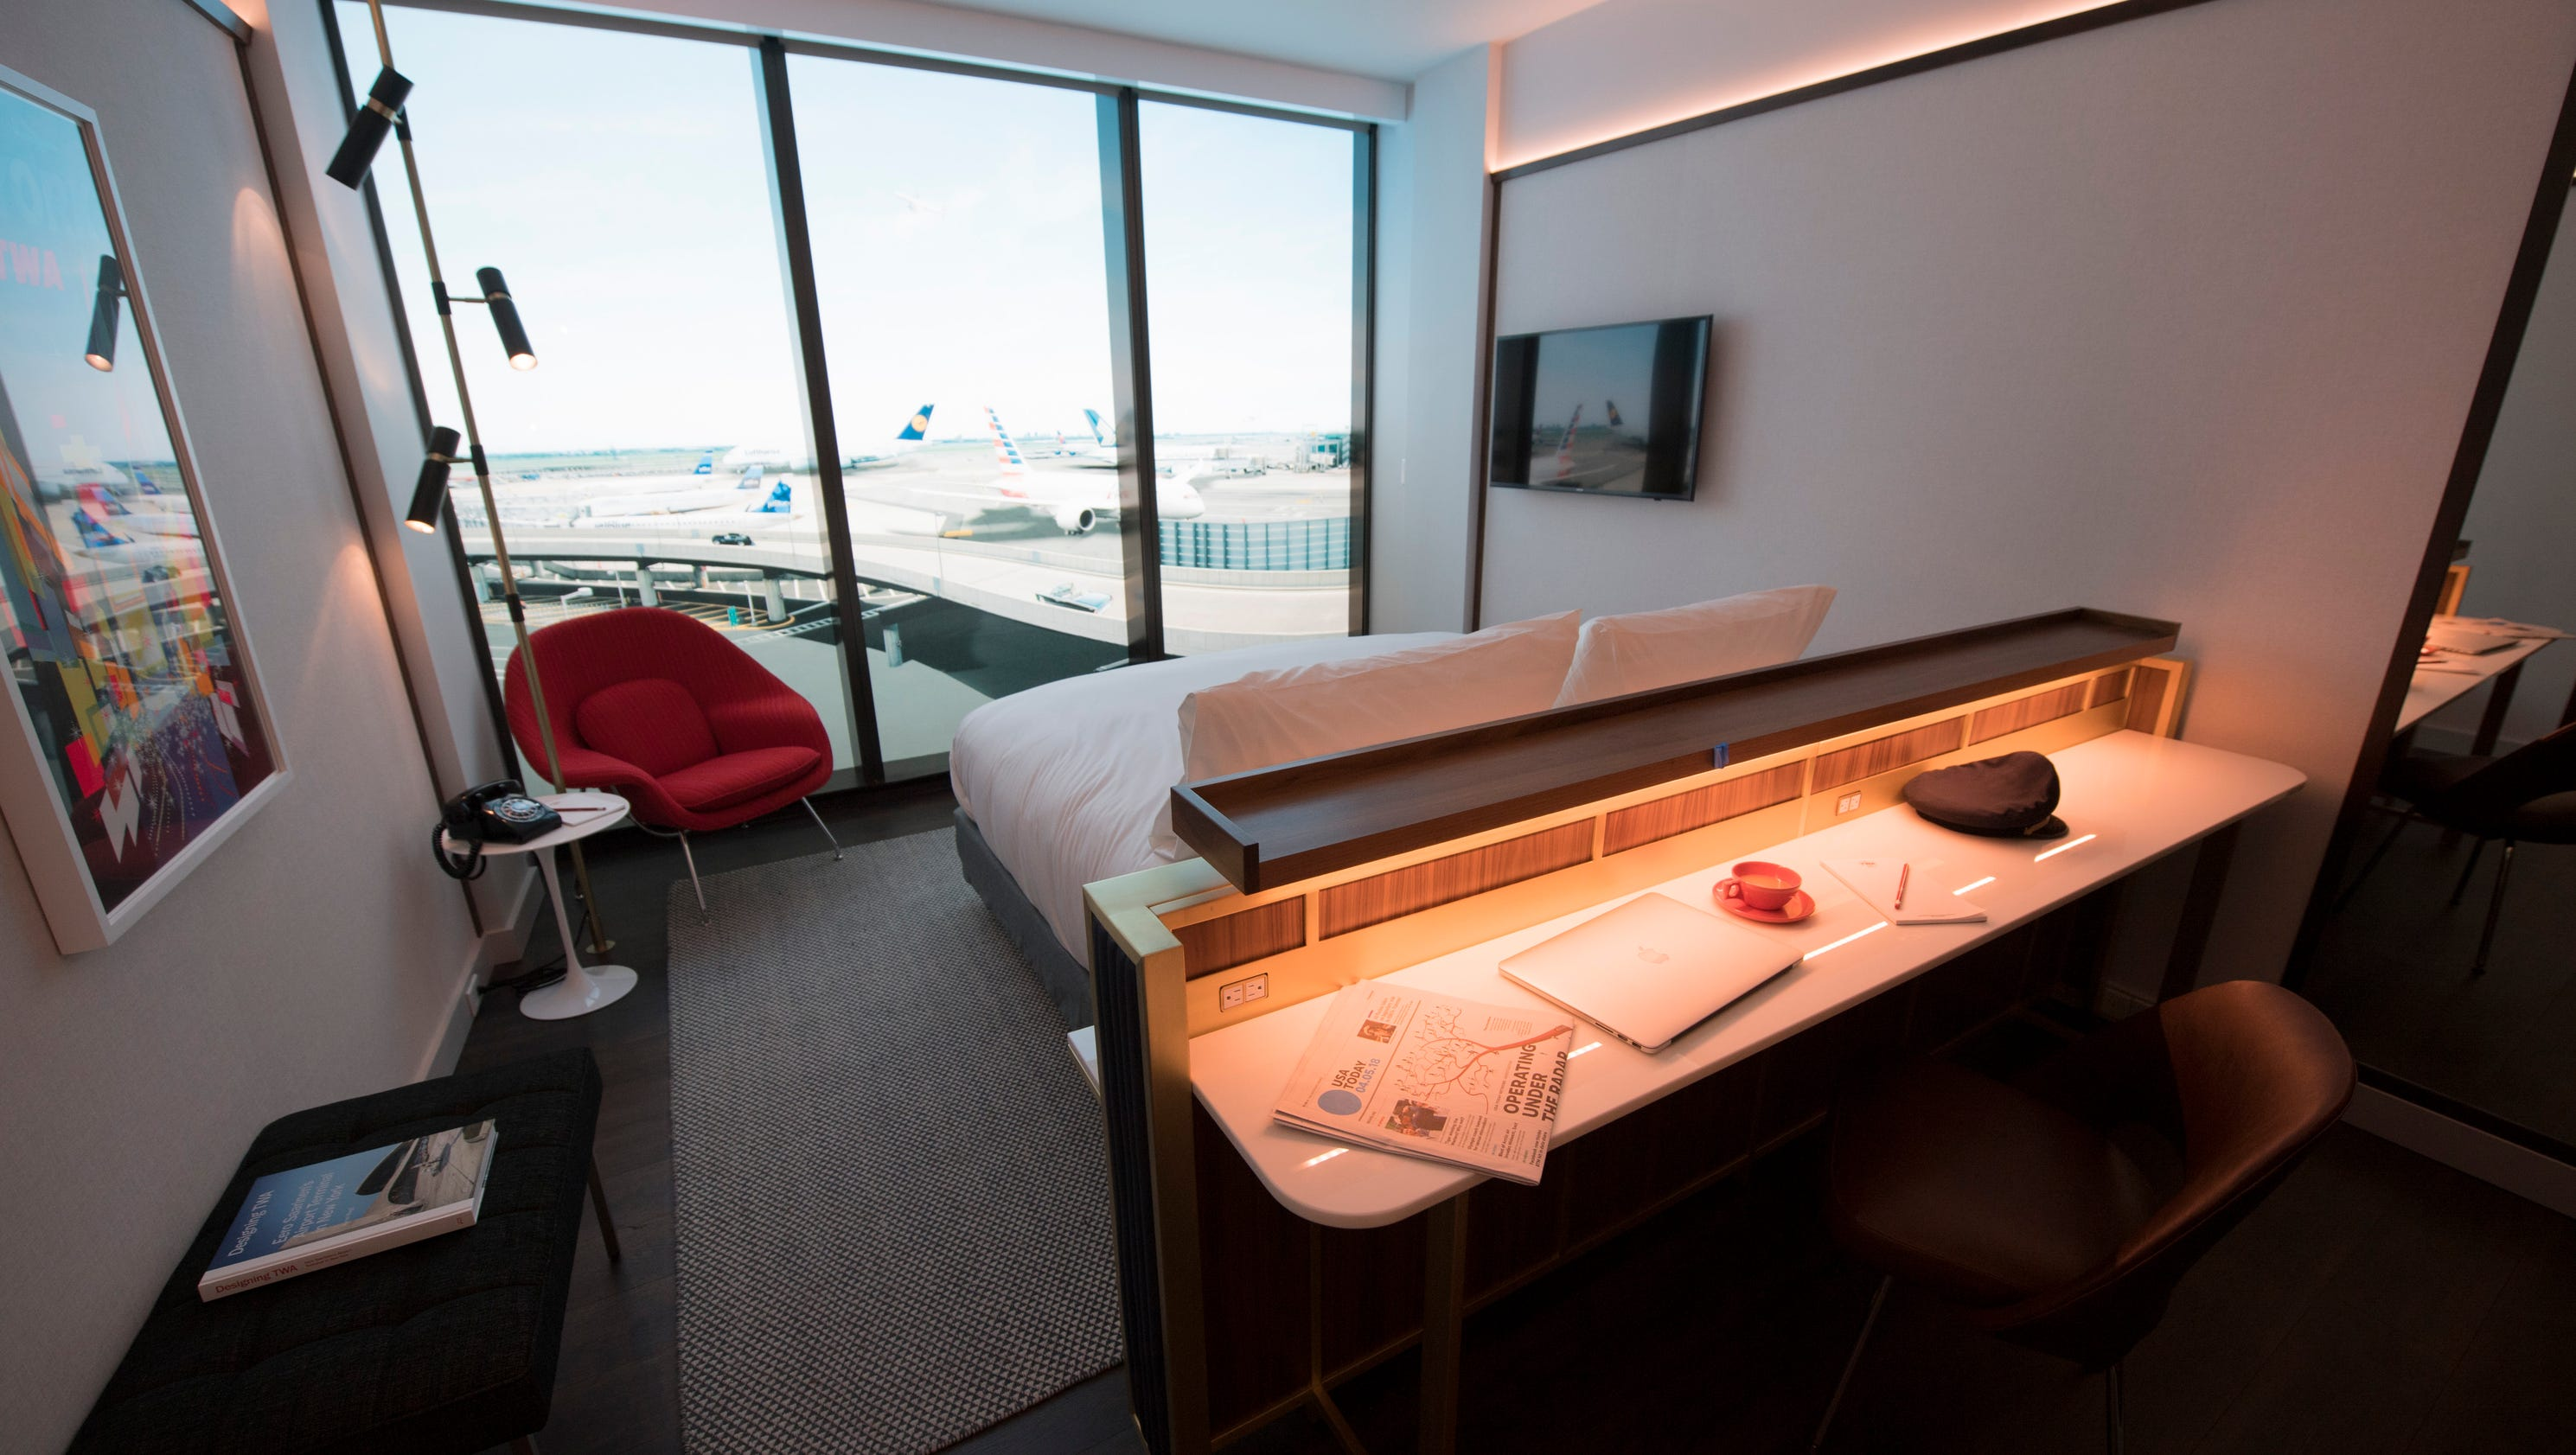 Twa hotel room designs unveiled for new york jfk airport for Hotel bedroom designs